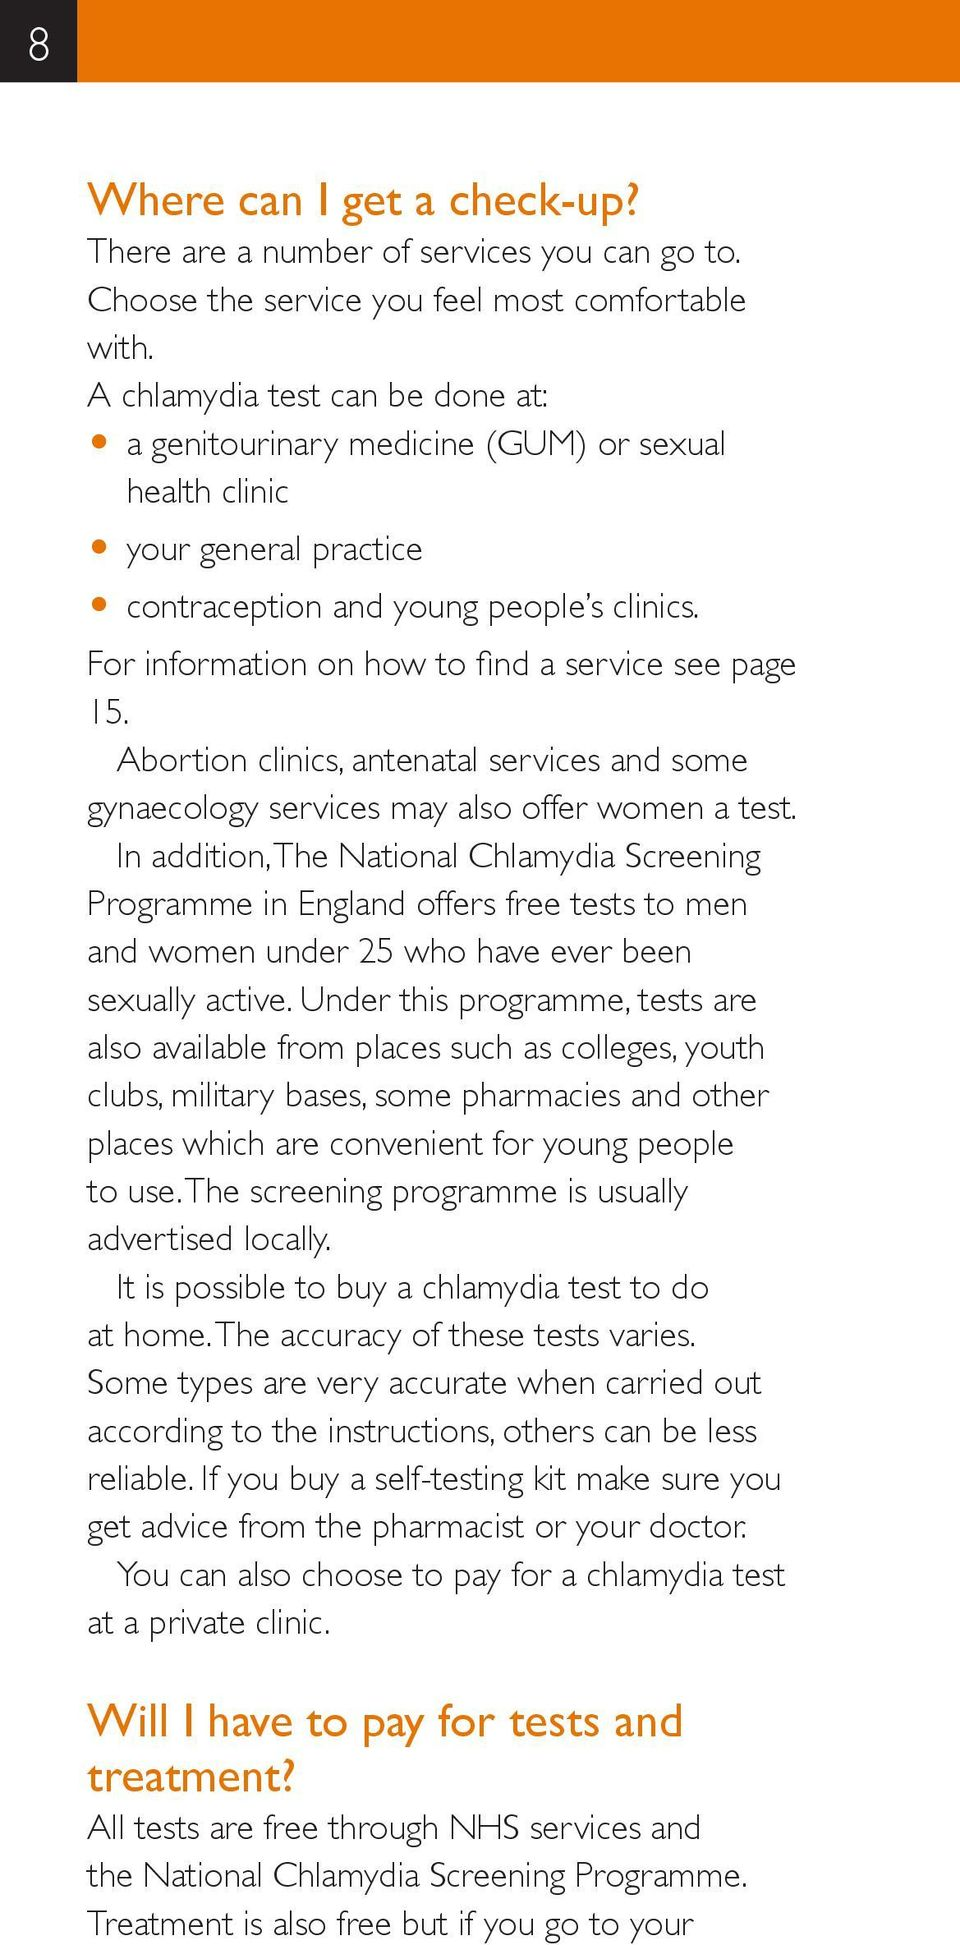 For information on how to find a service see page 15. Abortion clinics, antenatal services and some gynaecology services may also offer women a test.